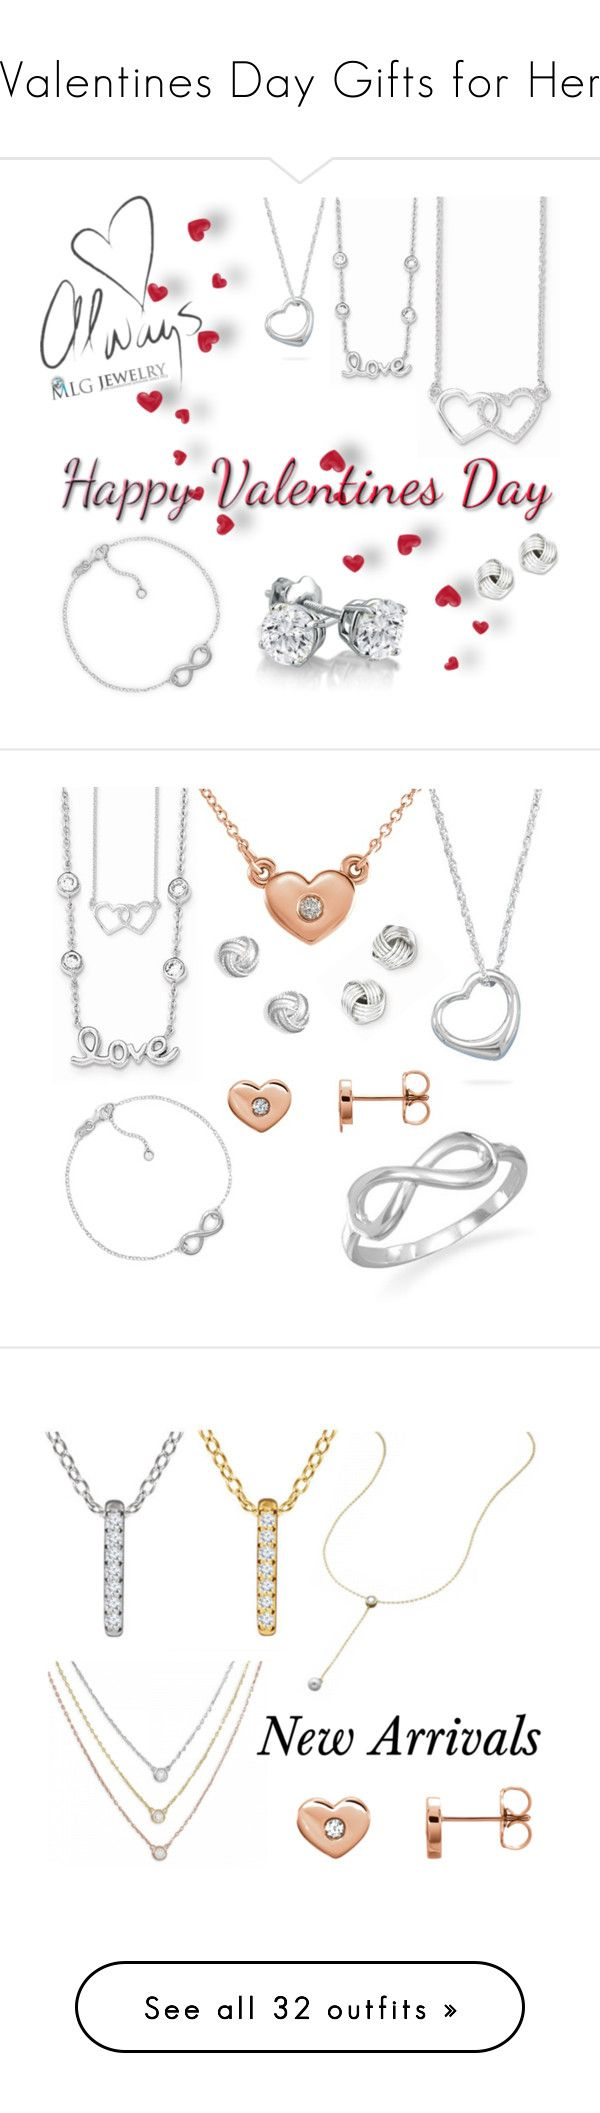 """Valentines Day Gifts for Her"" by mlgjewelry on Polyvore featuring Amanda Rose Collection, Wish by Amanda Rose, jewelry, earrings, necklaces, post back earrings, sterling silver post earrings, heart shaped earrings, post earrings and heart jewelry"